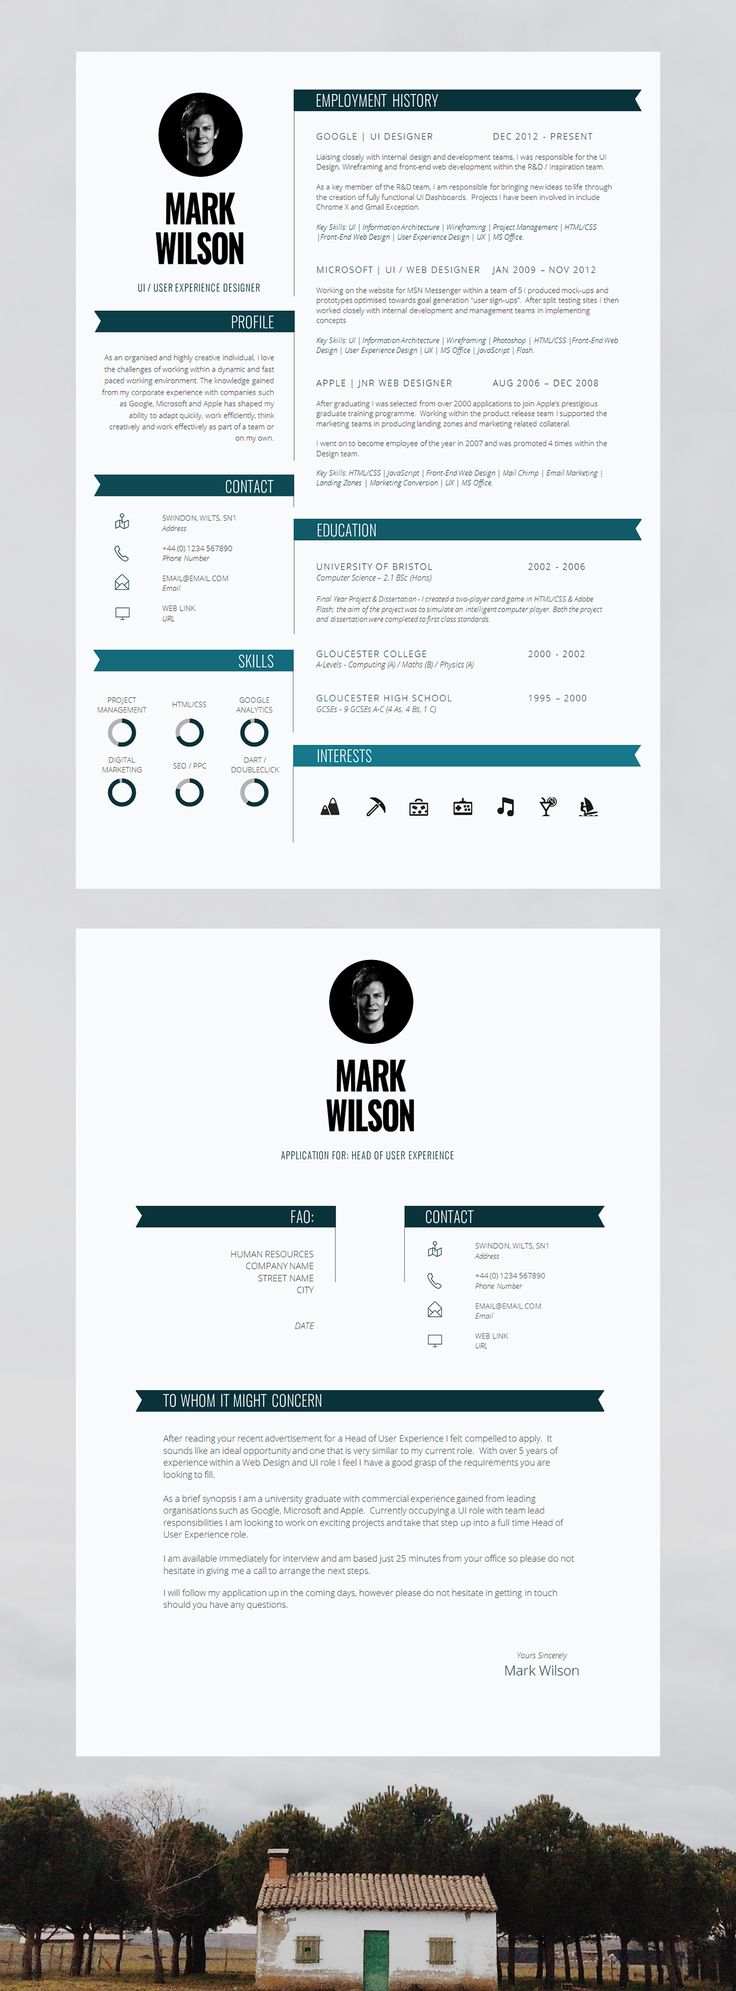 a resume guide and cv template rolled up into one handy download creative